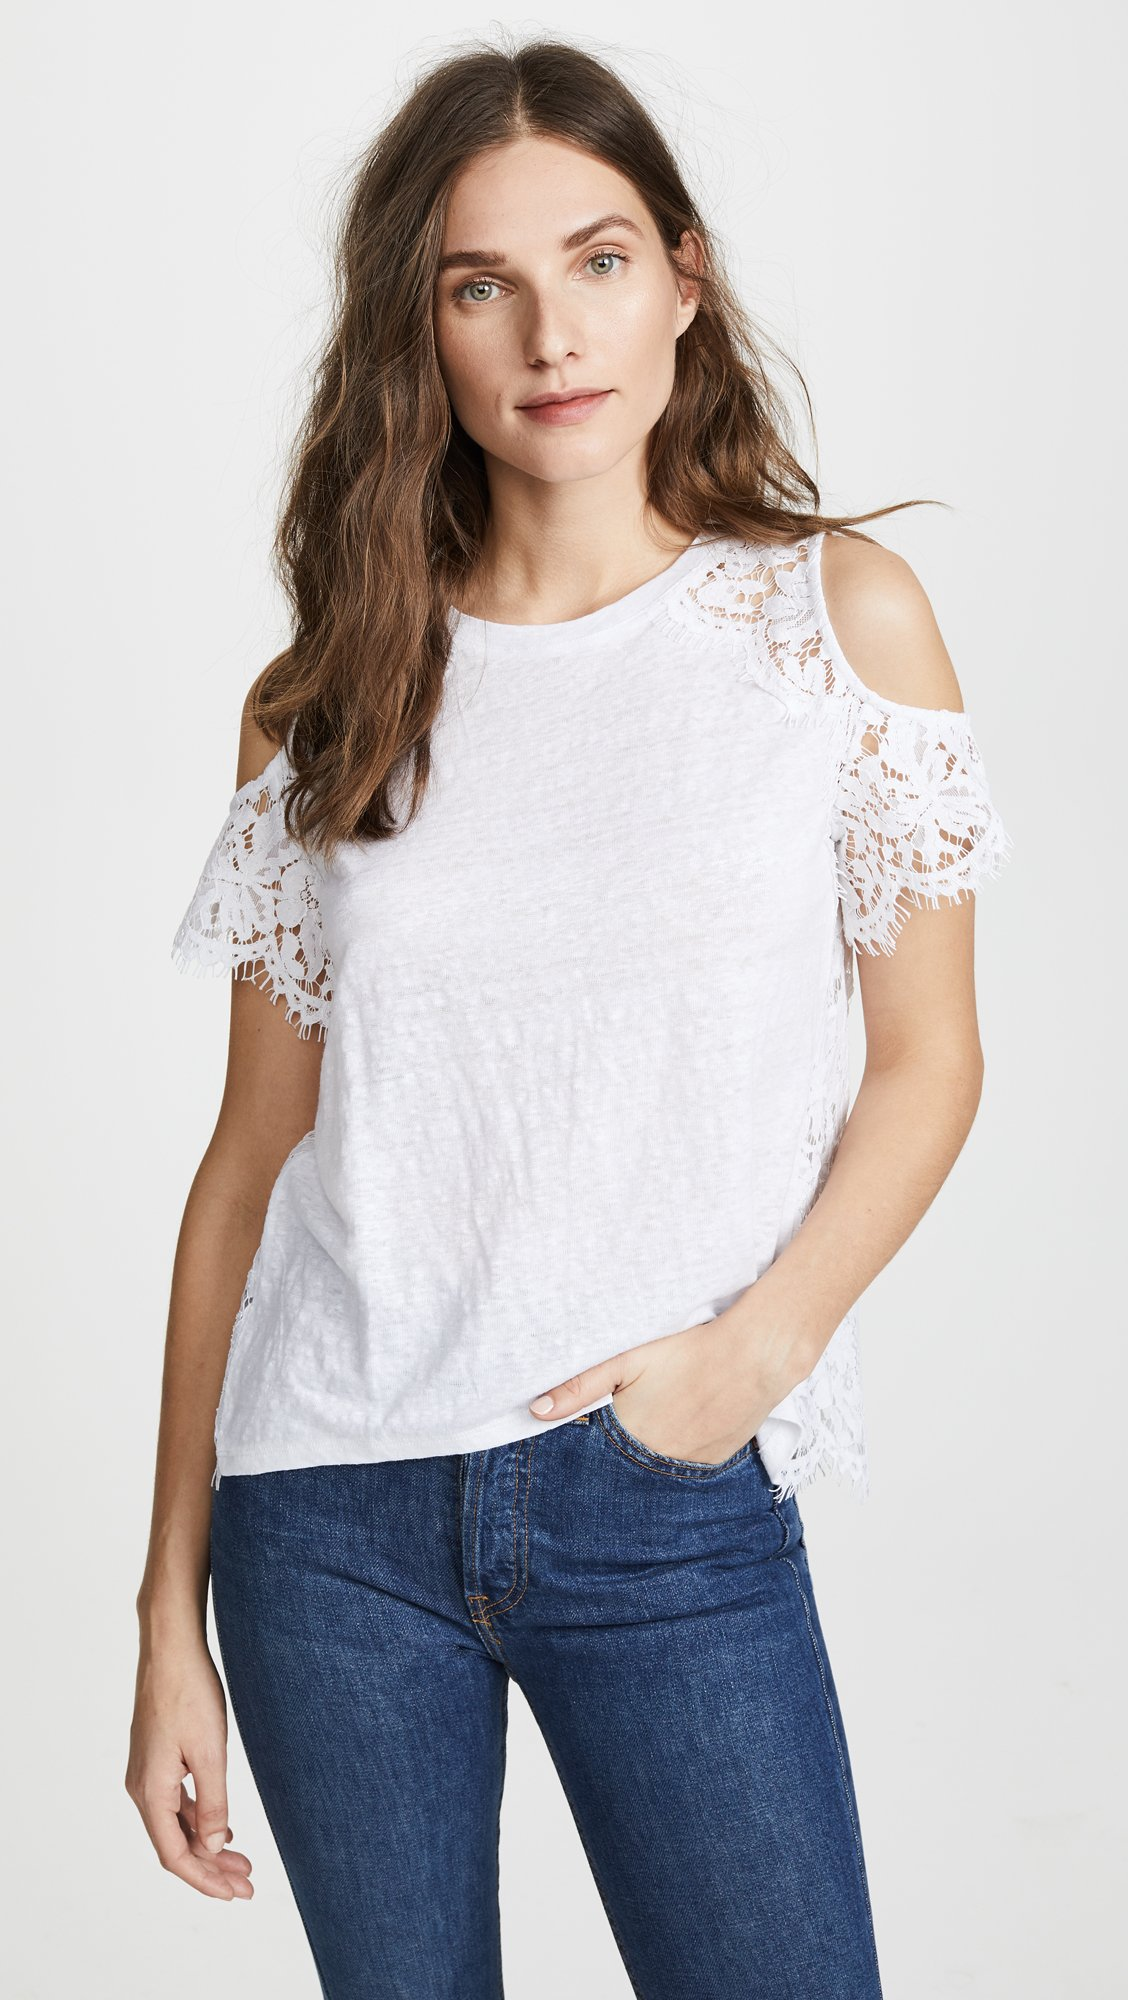 Generation Love Women's London Lace Cold Shoulder Tee, White, Small by Generation Love (Image #4)